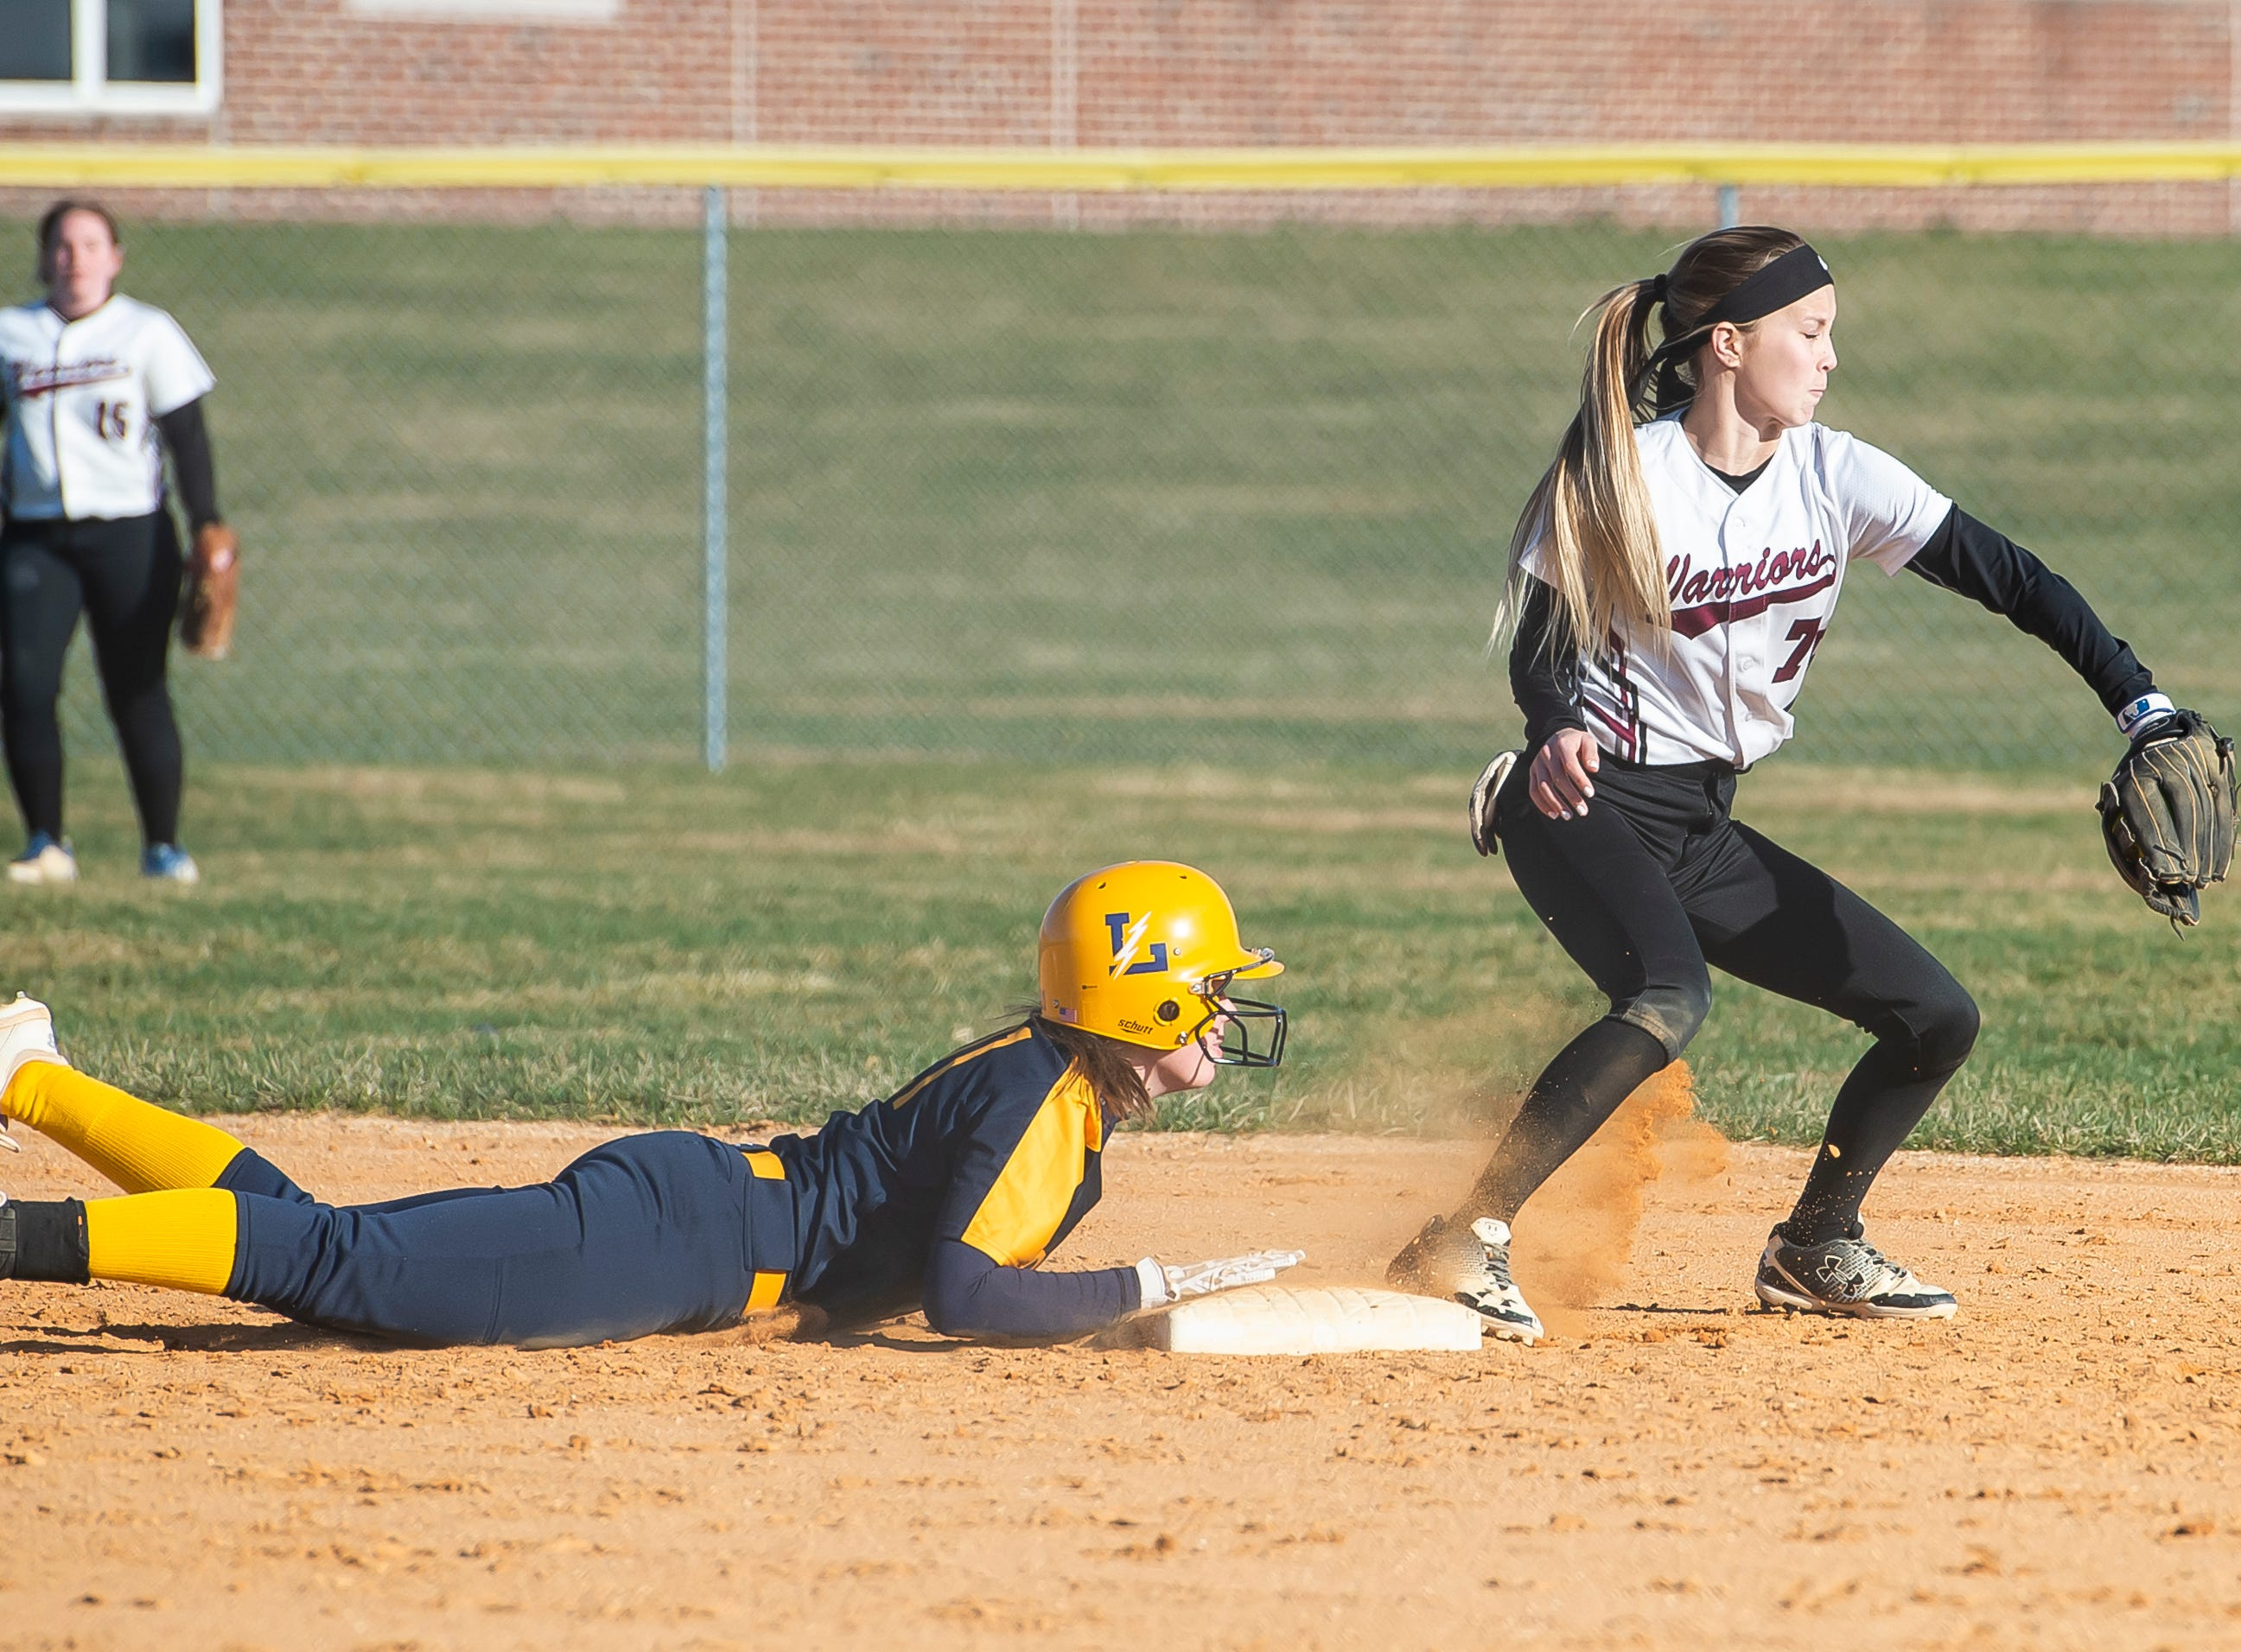 Littlestown's Kacie Frock dives head first safely back to the bag during a YAIAA softball game against Gettysburg on Monday, April 1, 2019. The Bolts won 10-4.